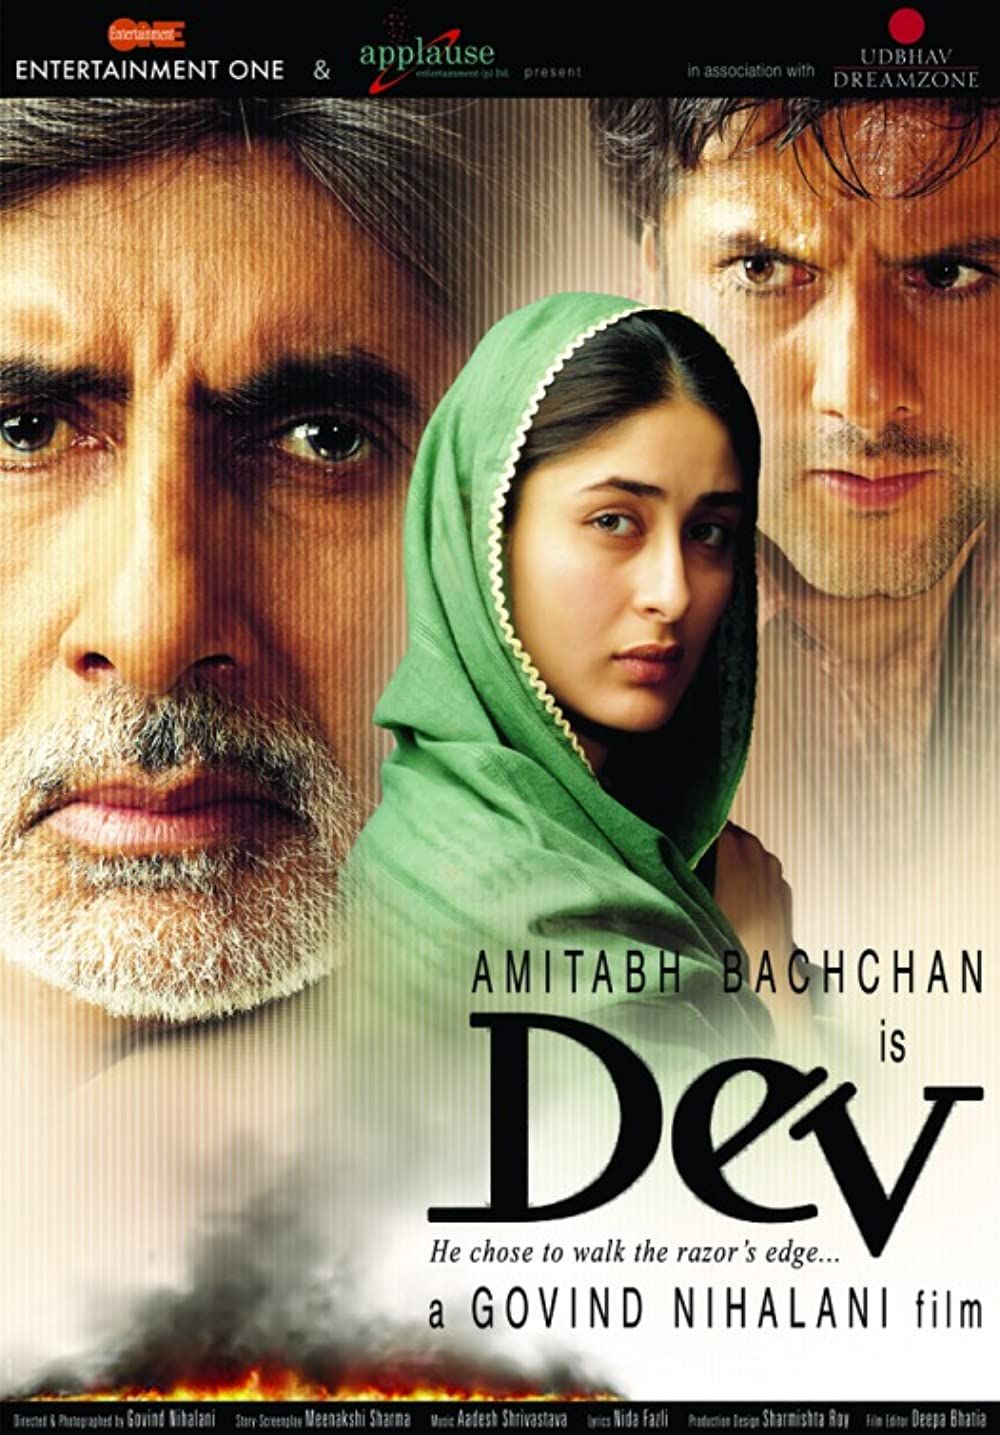 Dev 2004 Hindi 1080p HDRip ESub 2.36GB Download